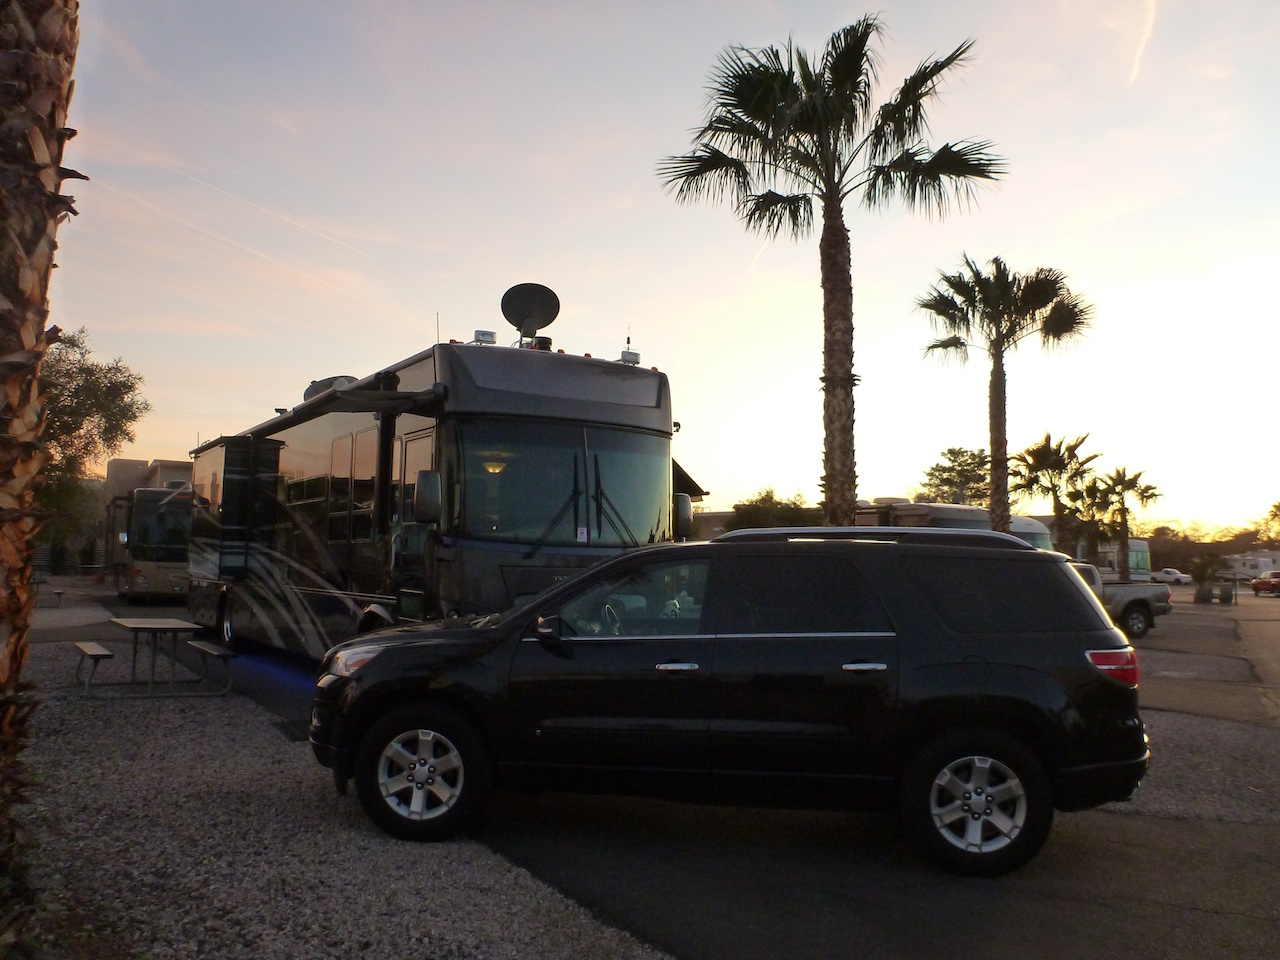 Our Site At The Las Vegas RV Resort